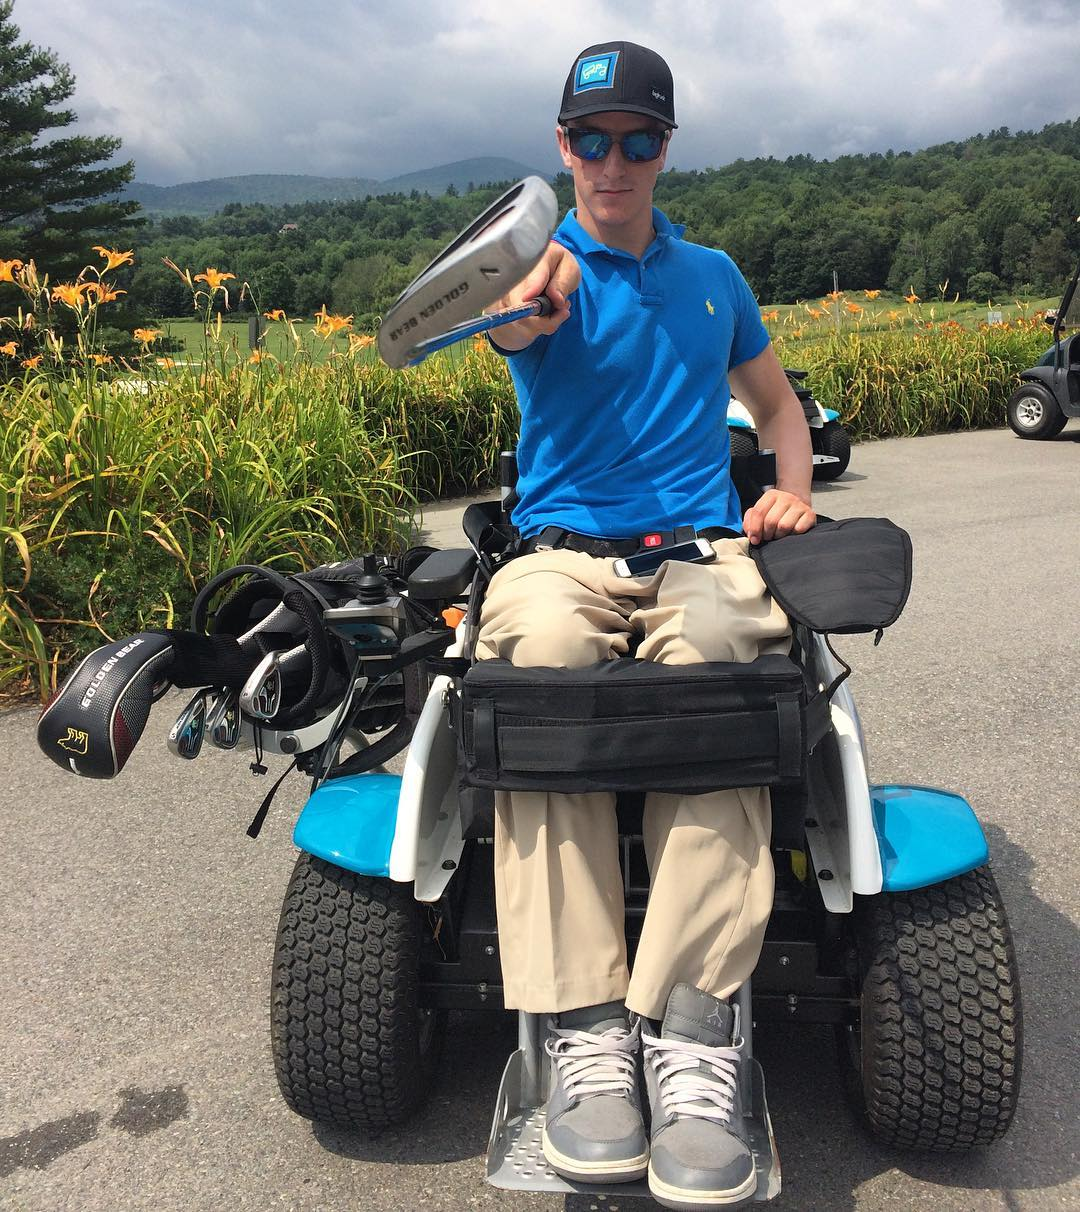 #highfivesathlete #newhampshirenick about to tee off in Vermont!! #charitygolf #highfivescharitygolf